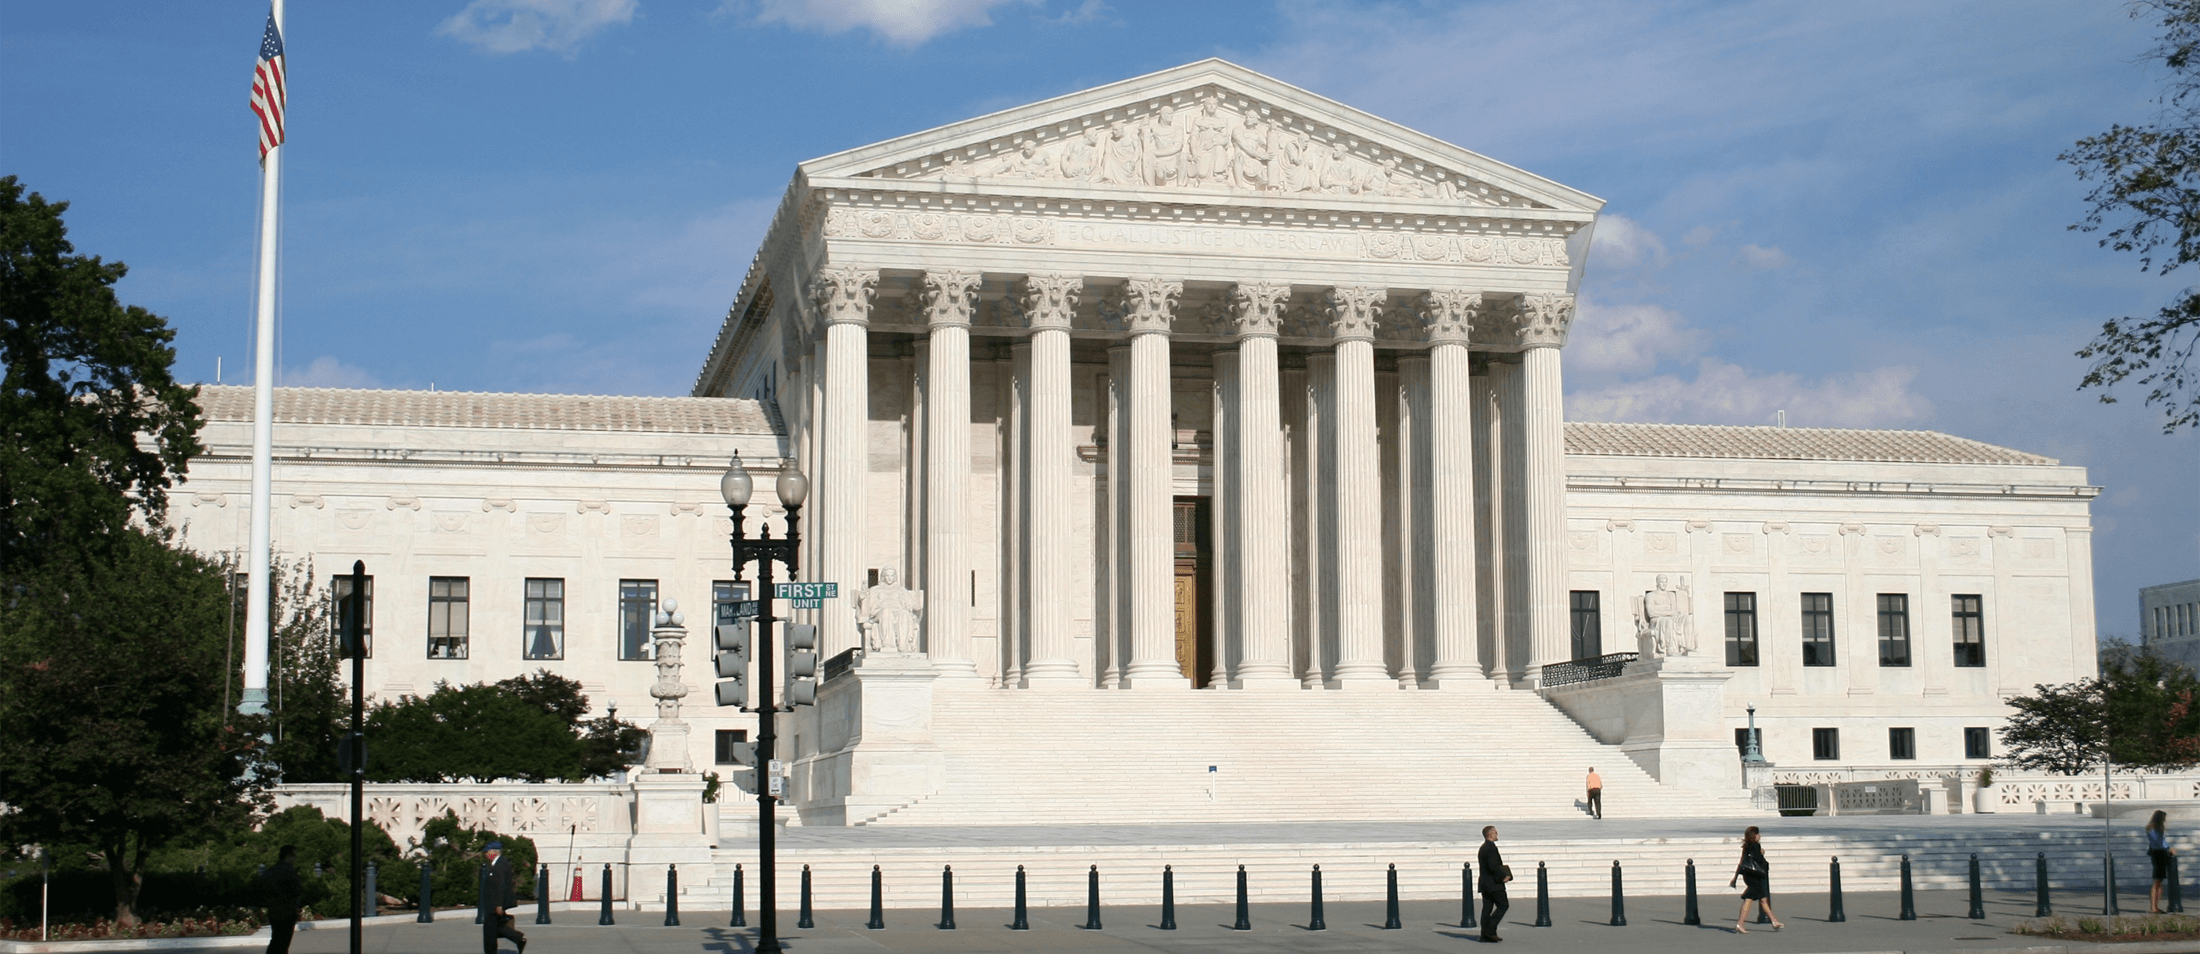 Michael Brown on This is Why We Cannot Put Their Faith in the Supreme Court